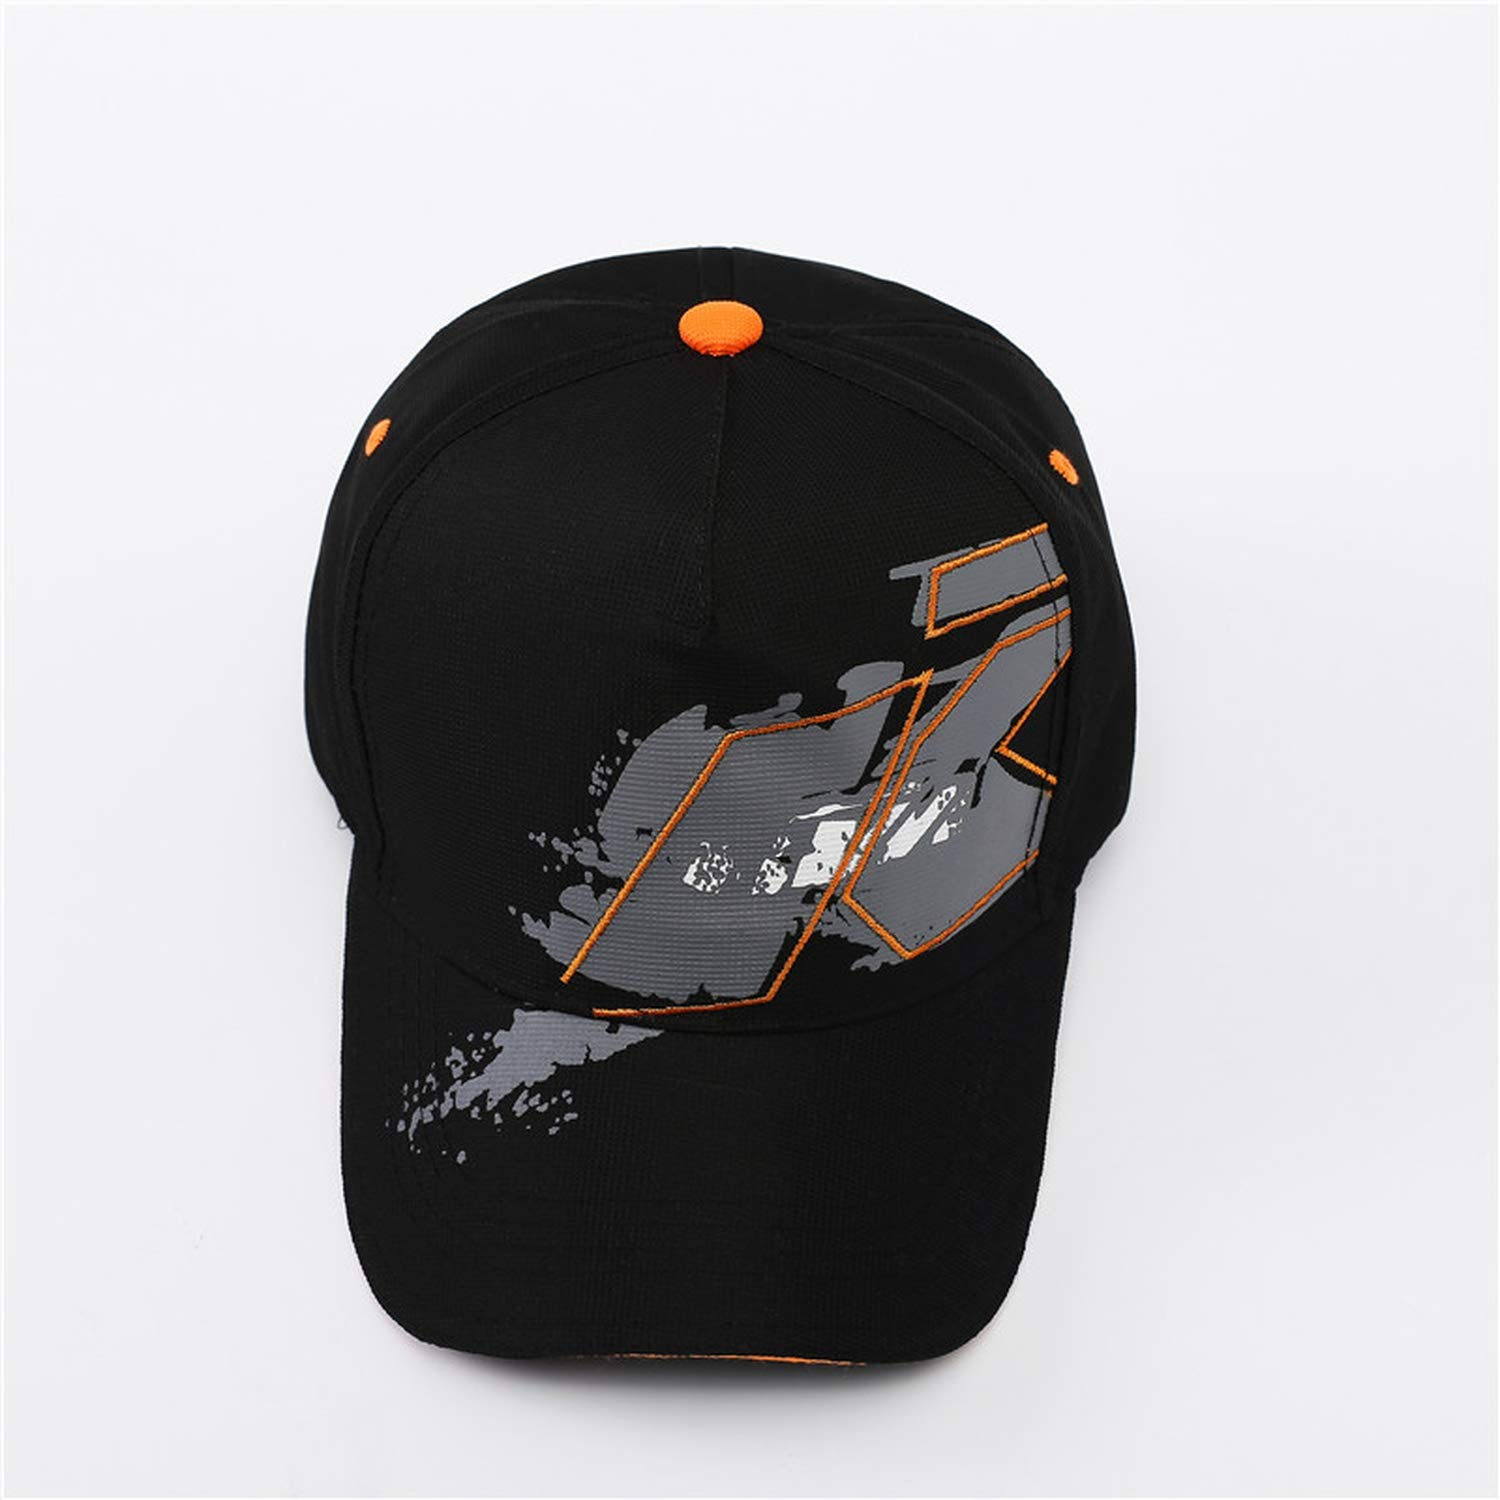 Hats & Caps Baseball Cap Snapback Hat Men Moto GP Letters Racing Motocross Riding Hip Hop Sun Hat Gorras para at Amazon Womens Clothing store: